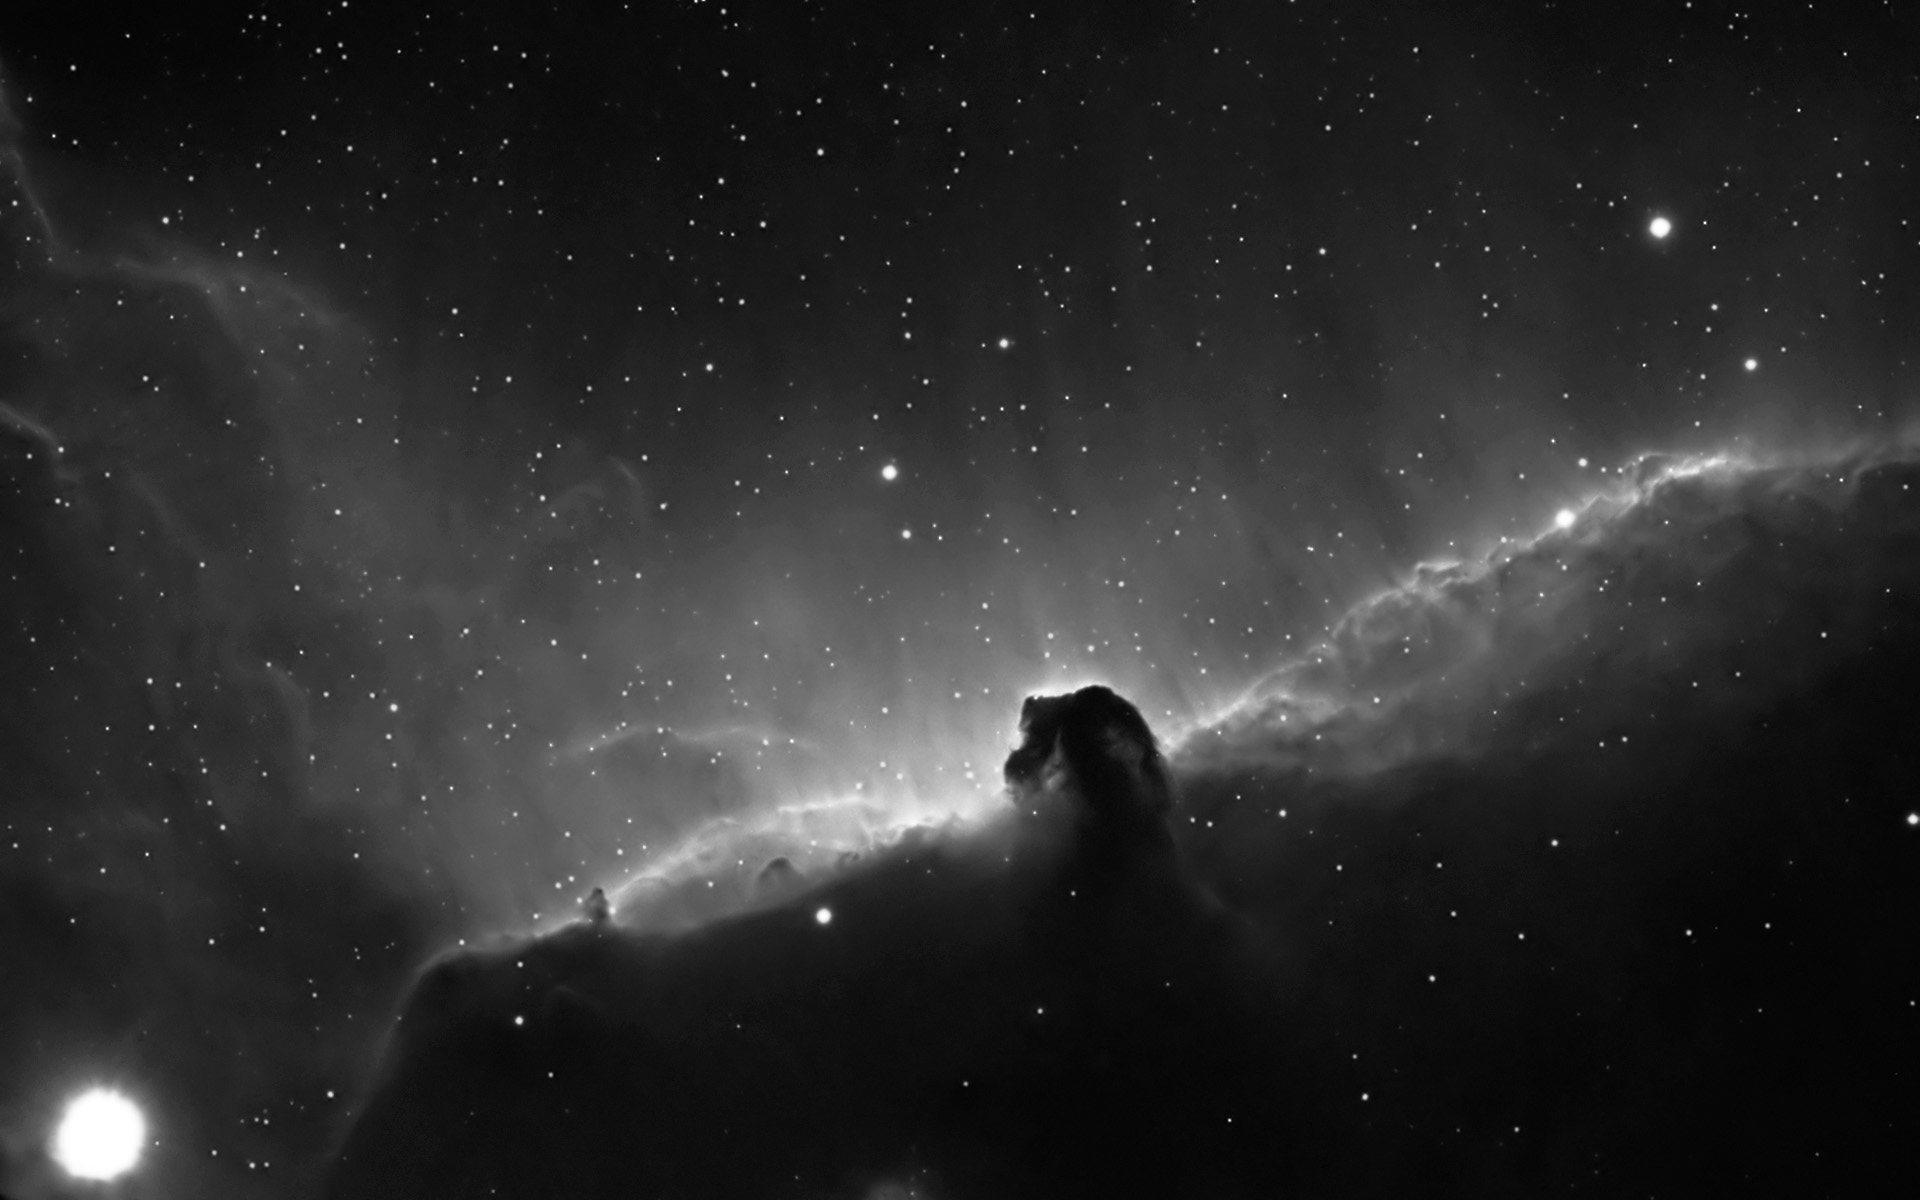 Horsehead Nebula wallpaper - 434791